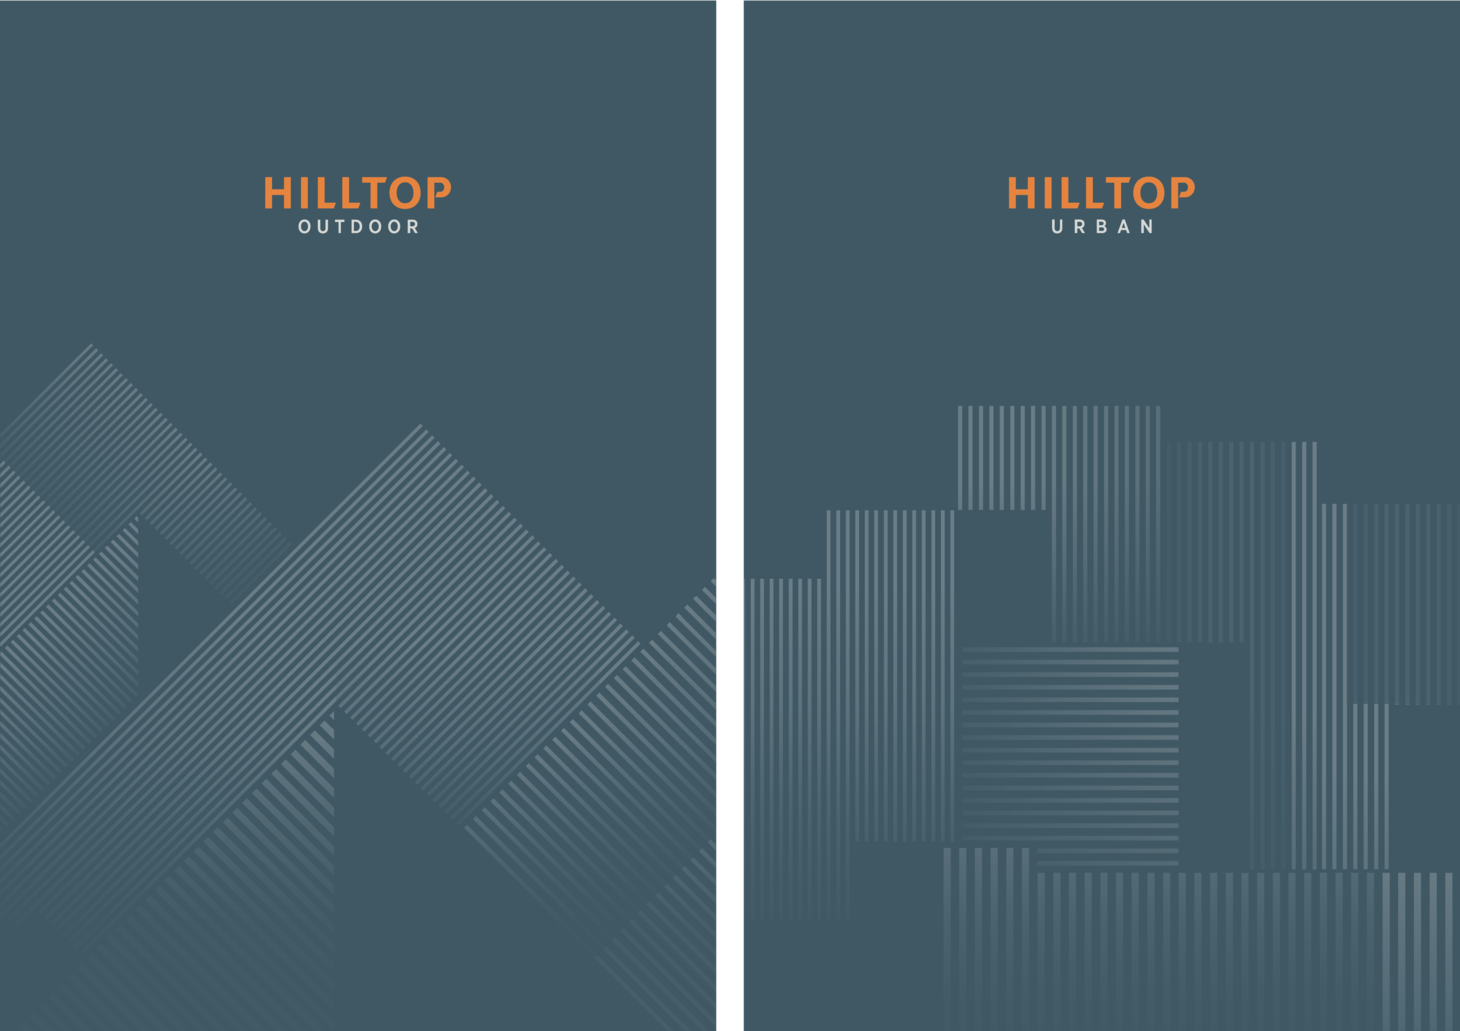 HILL_0304.png